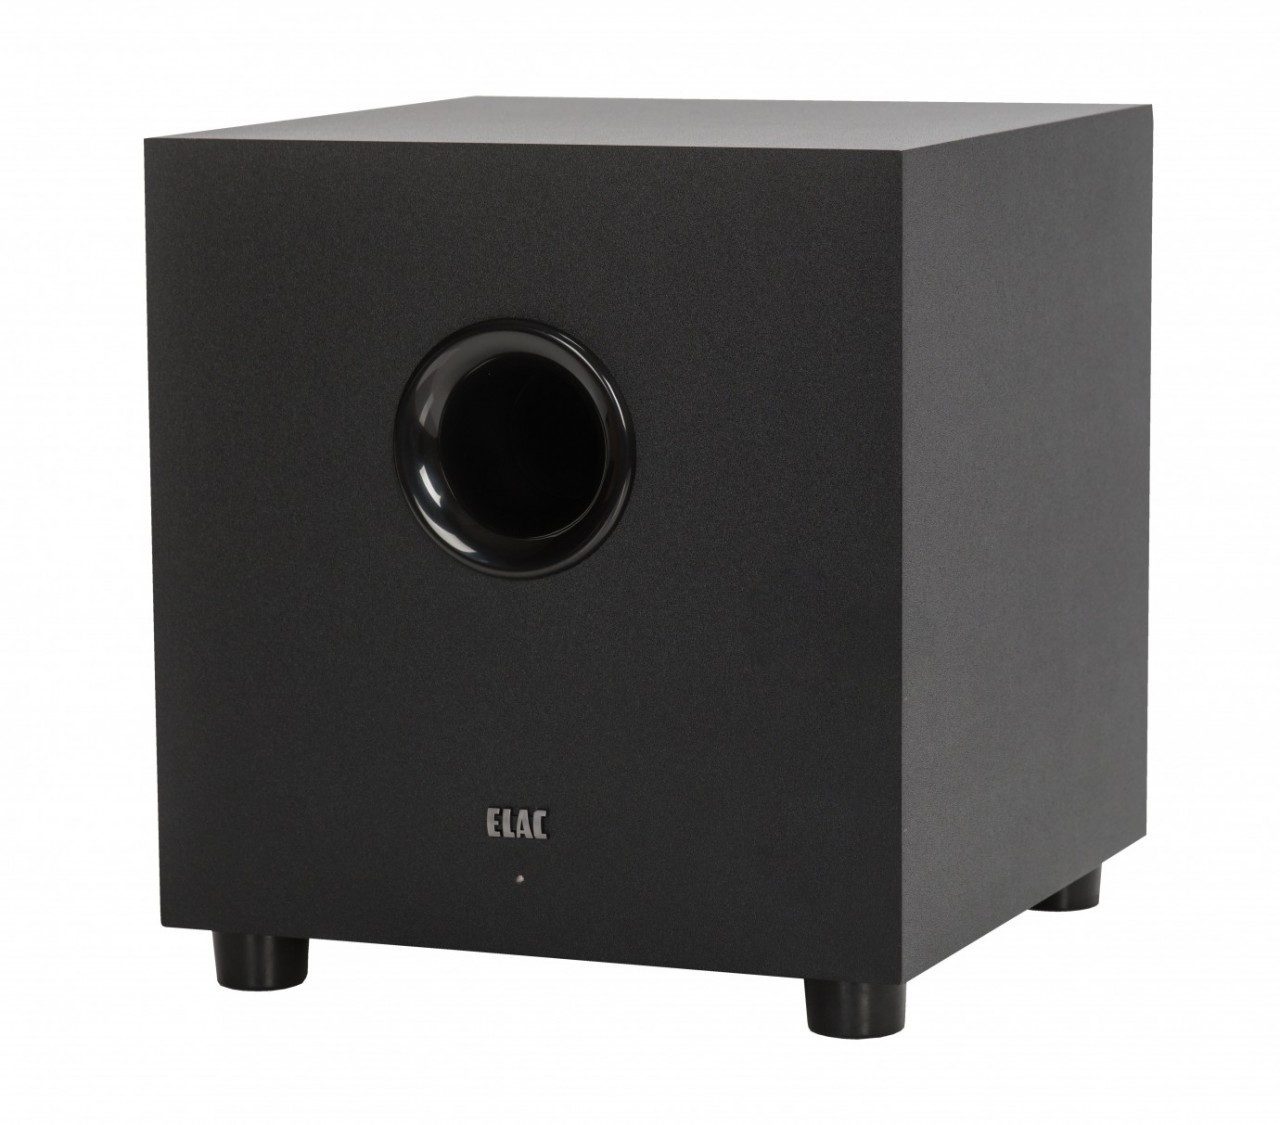 Image of Elac S5.2